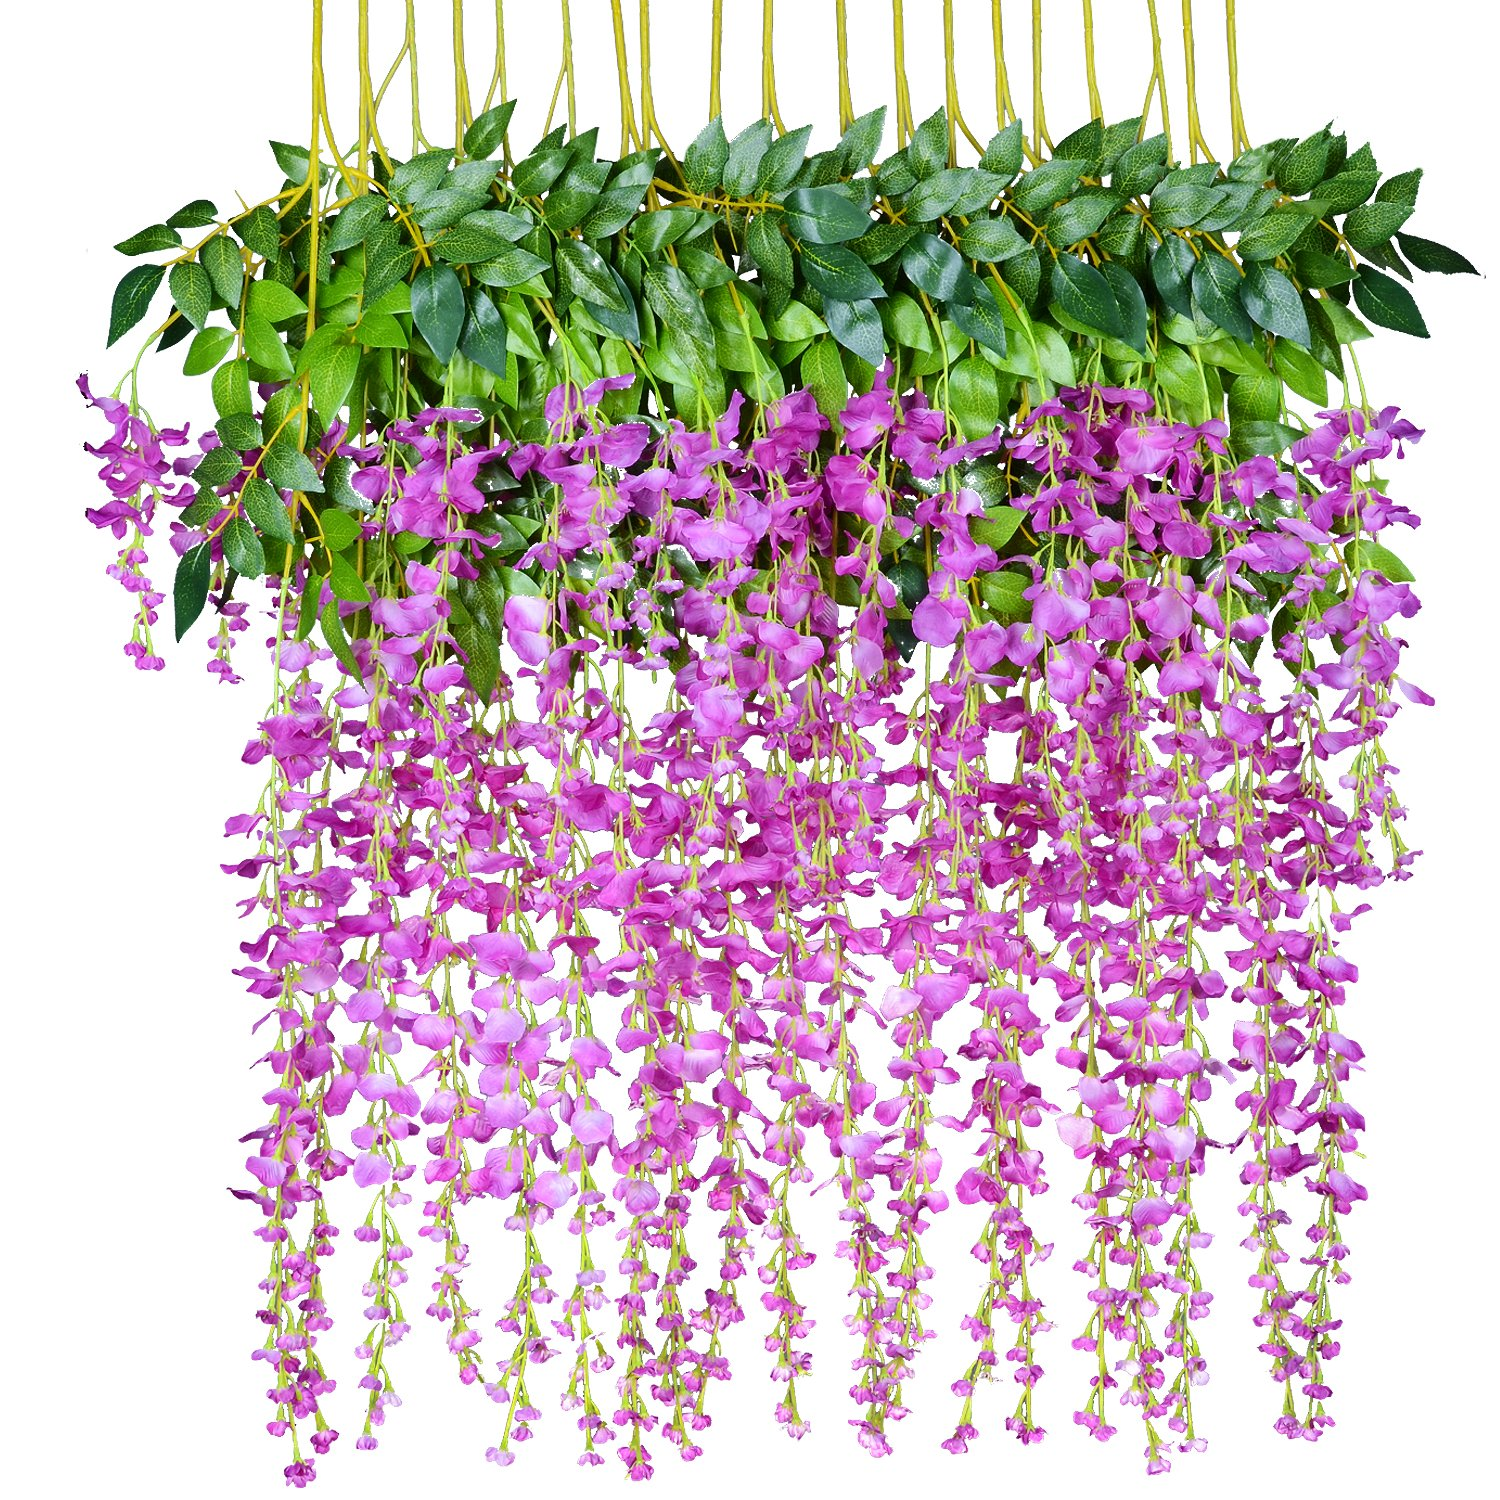 12 Pack 1 Piece 3.6 Feet Artificial Flowers Silk Wisteria Vine Ratta  Hanging Flower For Wedding